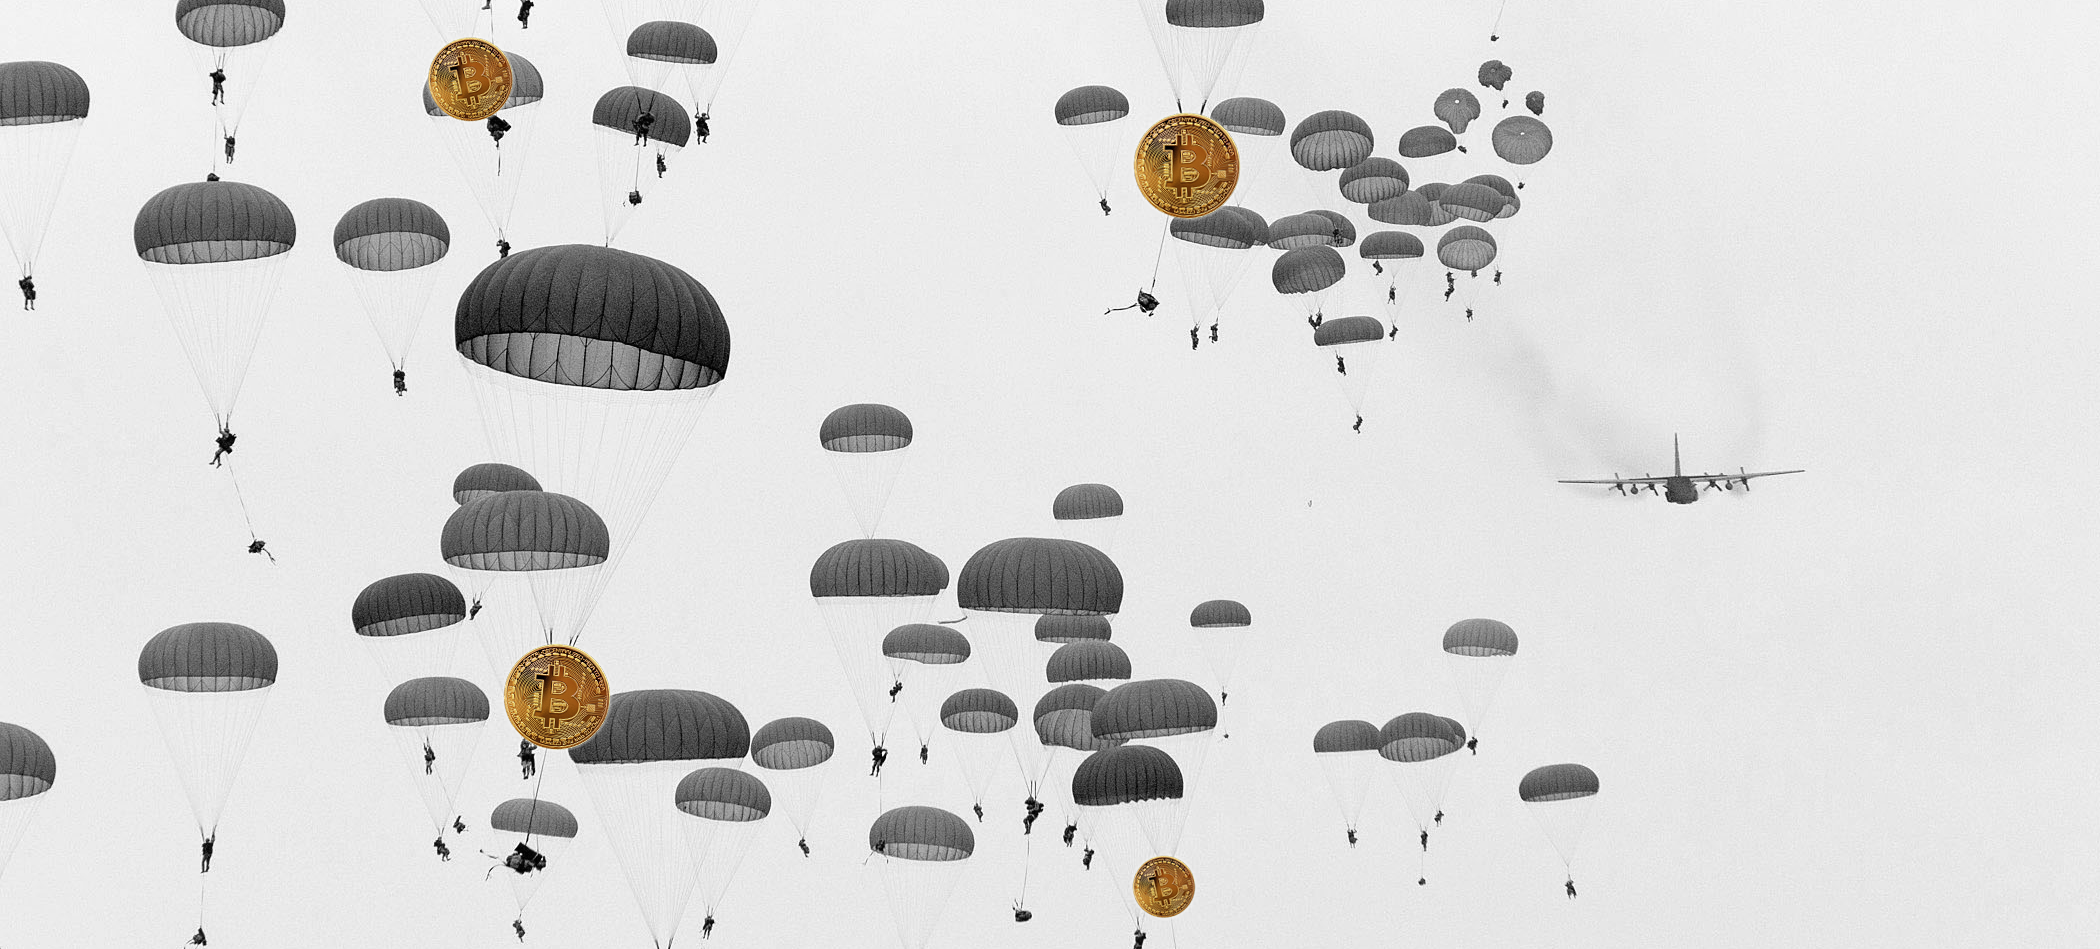 WTF is an Airdrop? A Detailed Guide to Free Cryptocurrency - By